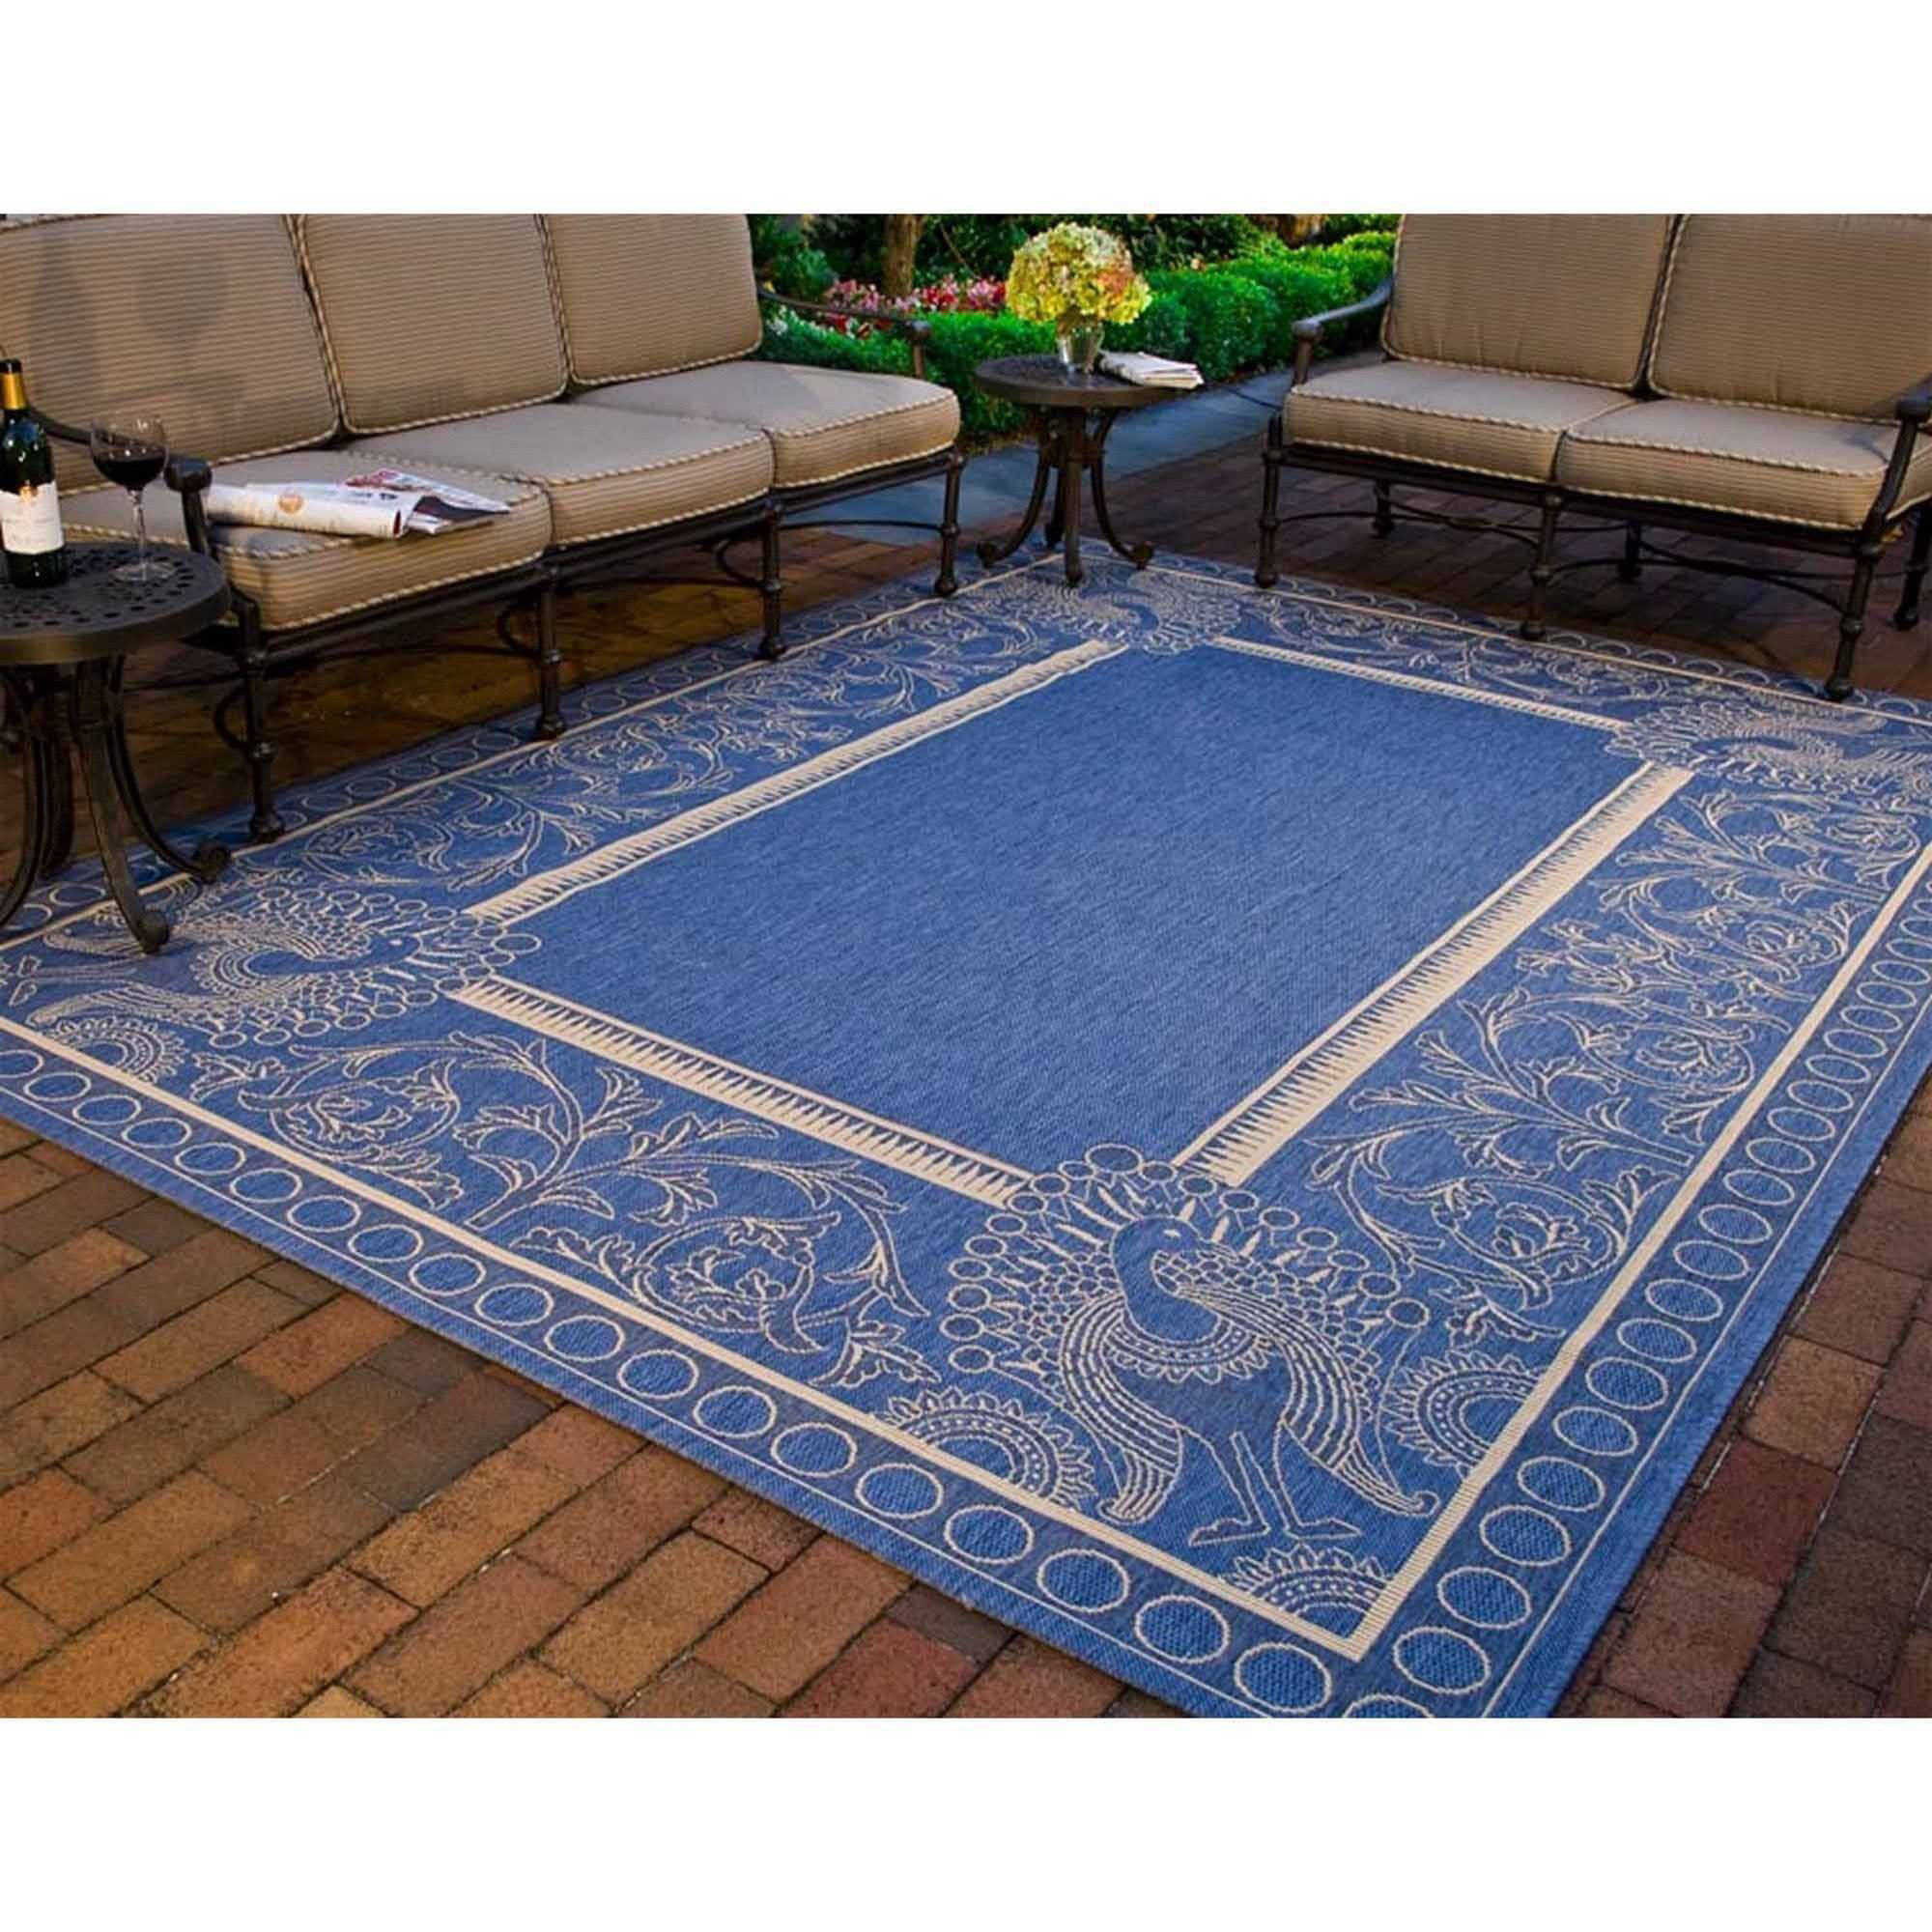 Safavieh Courtyard Cooper Power-Loomed Indoor/Outdoor Area Rug or Runner